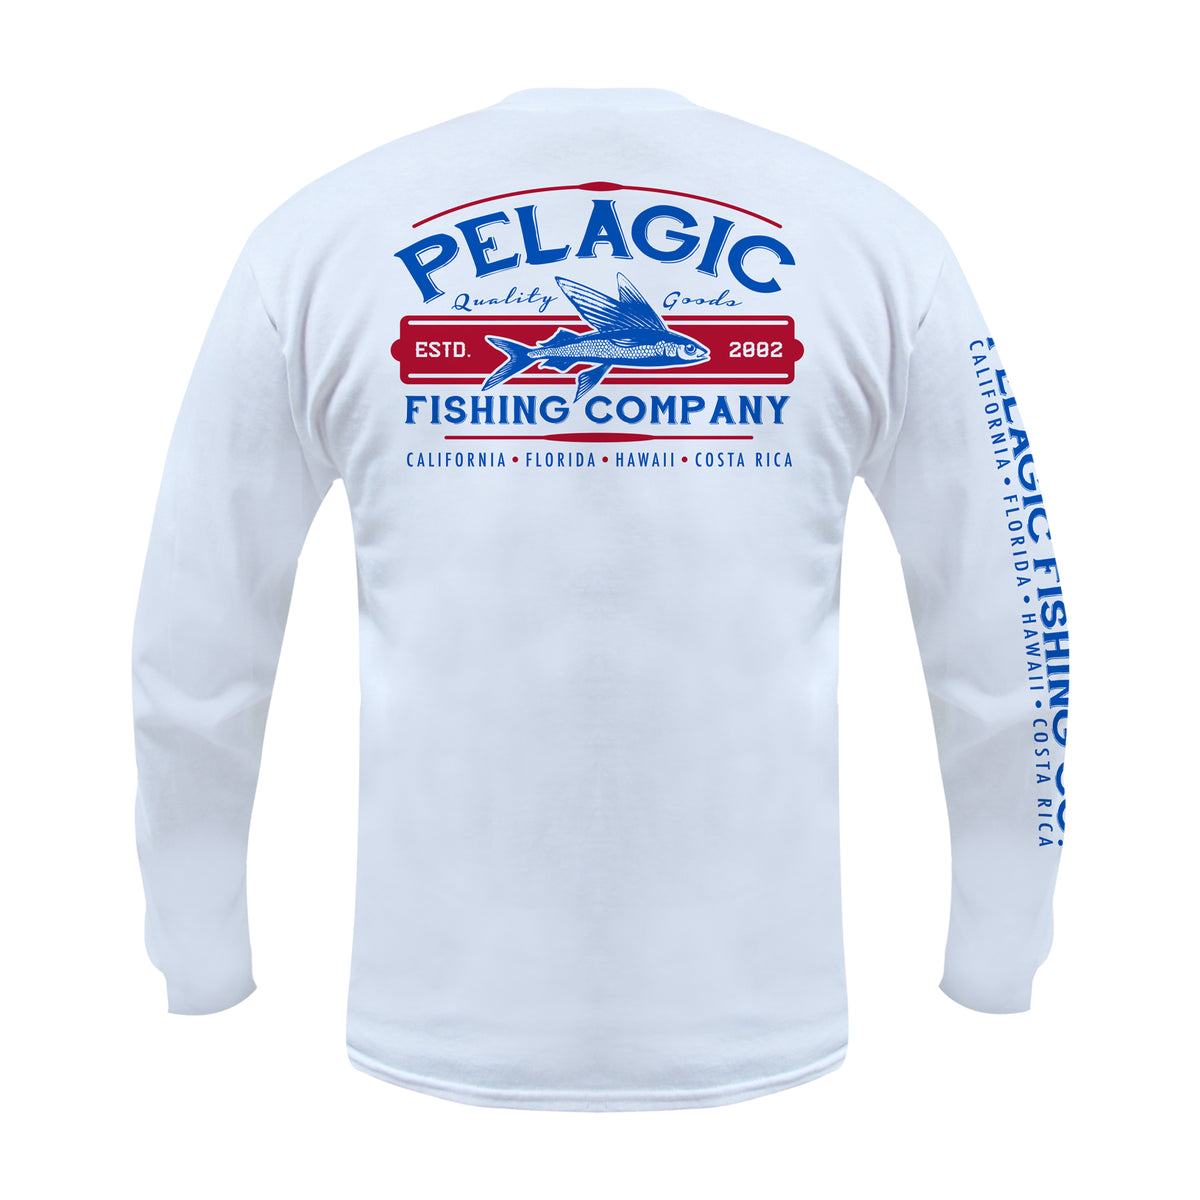 Fish Co. Long Sleeve Fishing T-shirt Big Image - 1